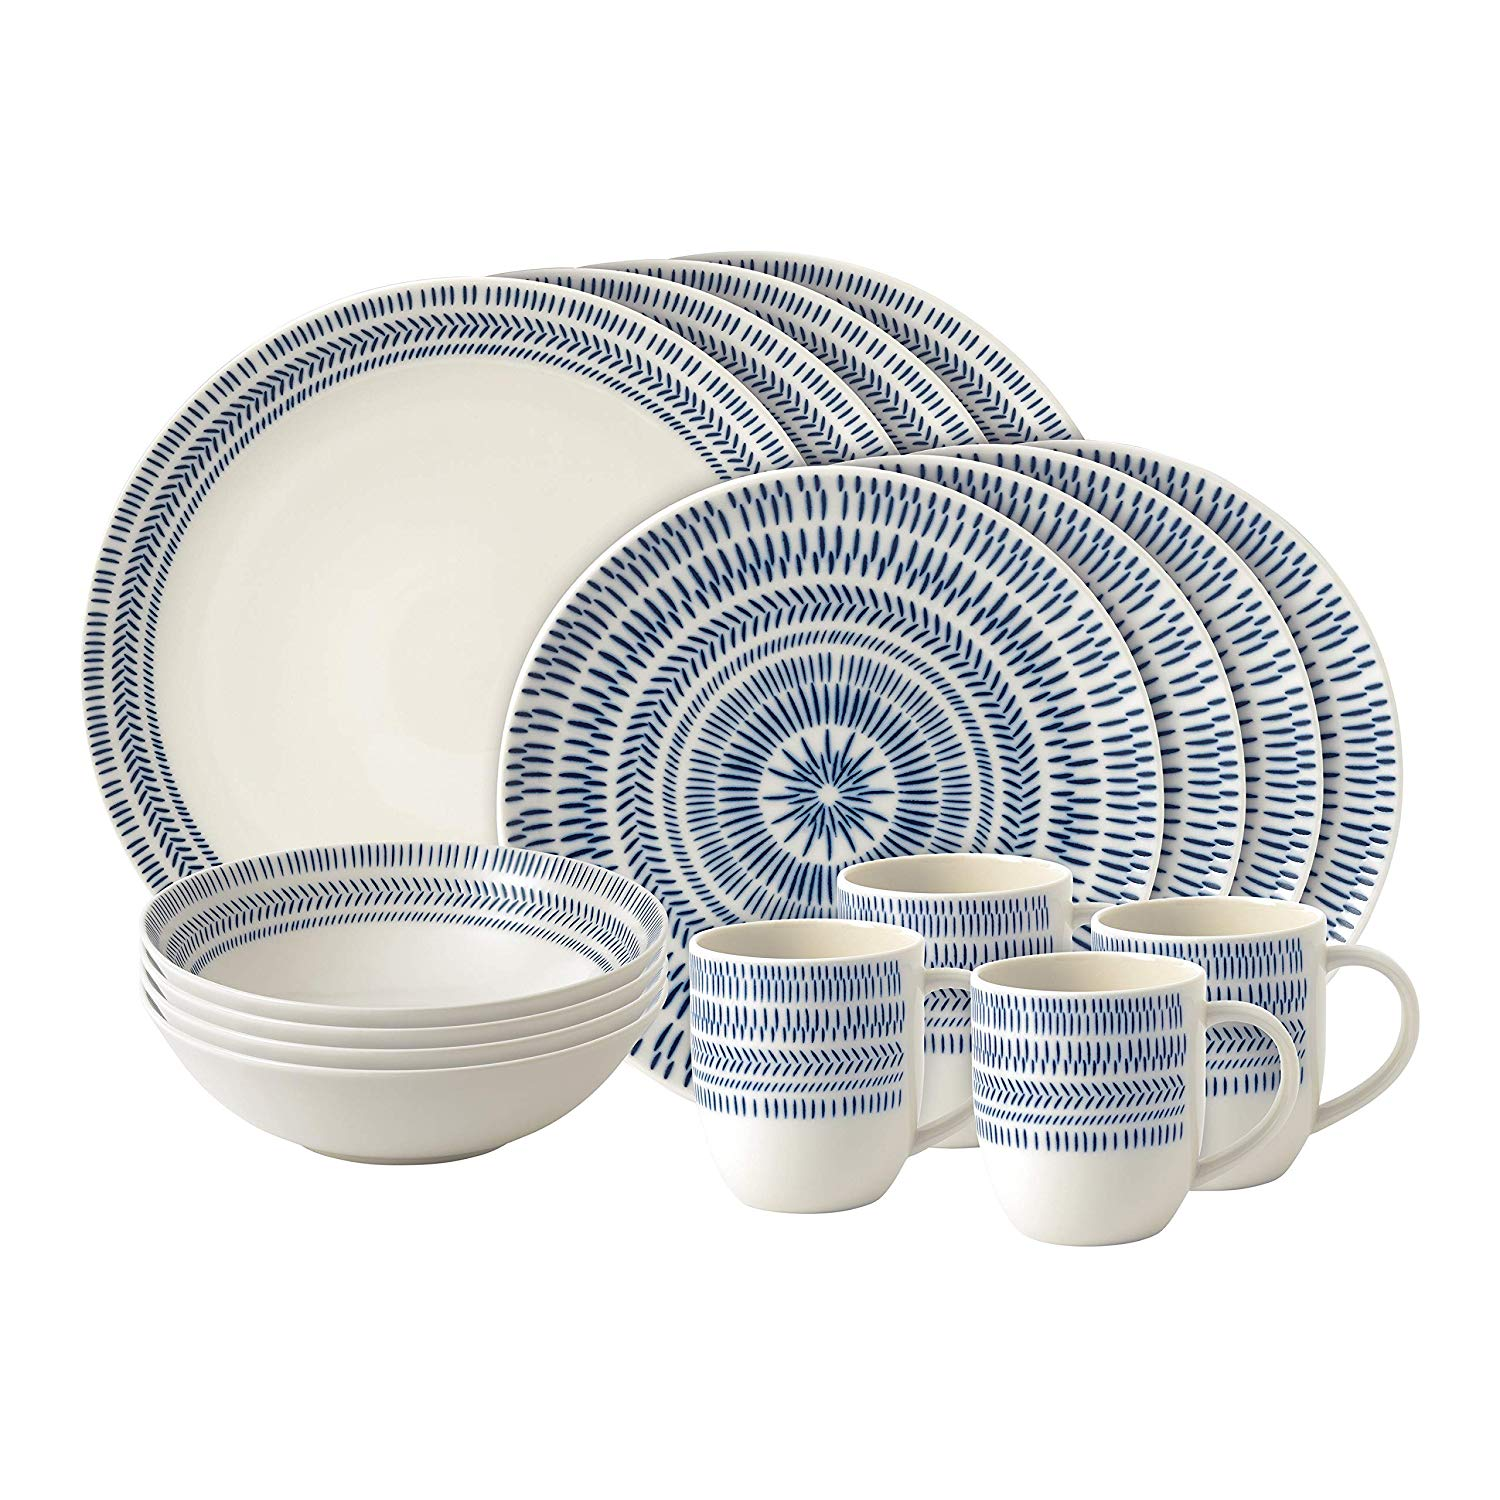 Онлайн каталог PROMENU: Набор посуды столовой Royal Doulton Dark Blue Chevron, фарфор, синий, 16 предметов                               40027603